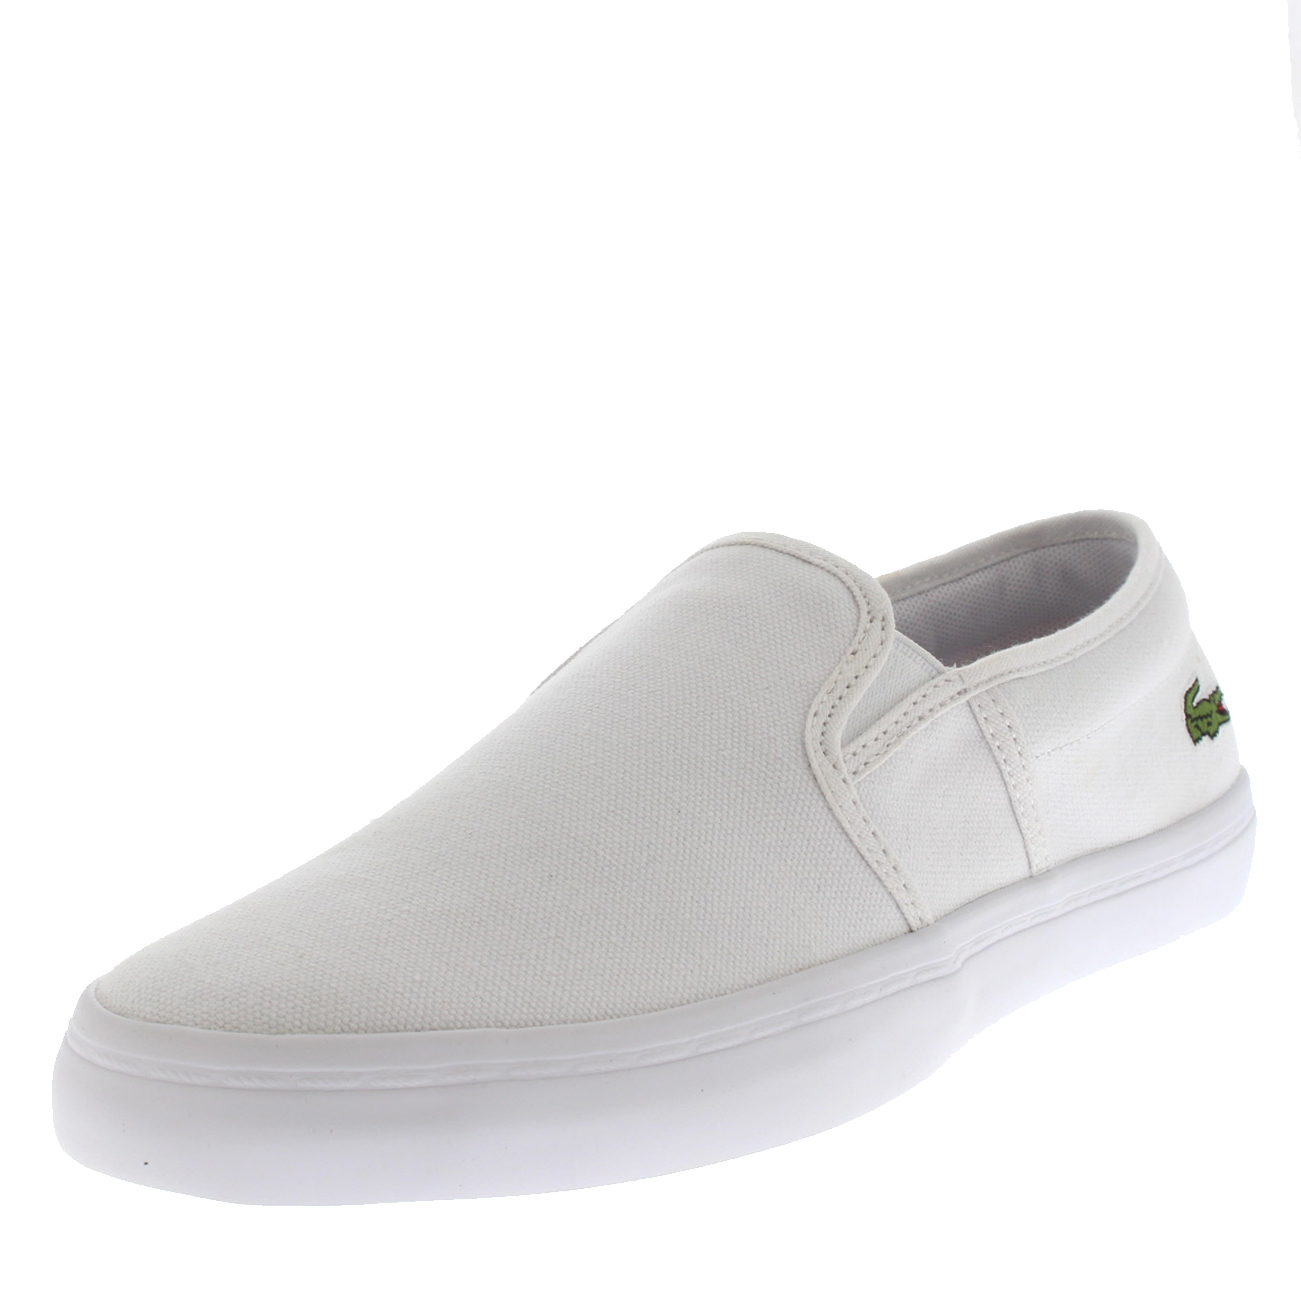 512ab1b2e60198 Womens Lacoste Gazon BL 2 Canvas Casual White Slip On Summer Sneakers US  5-10